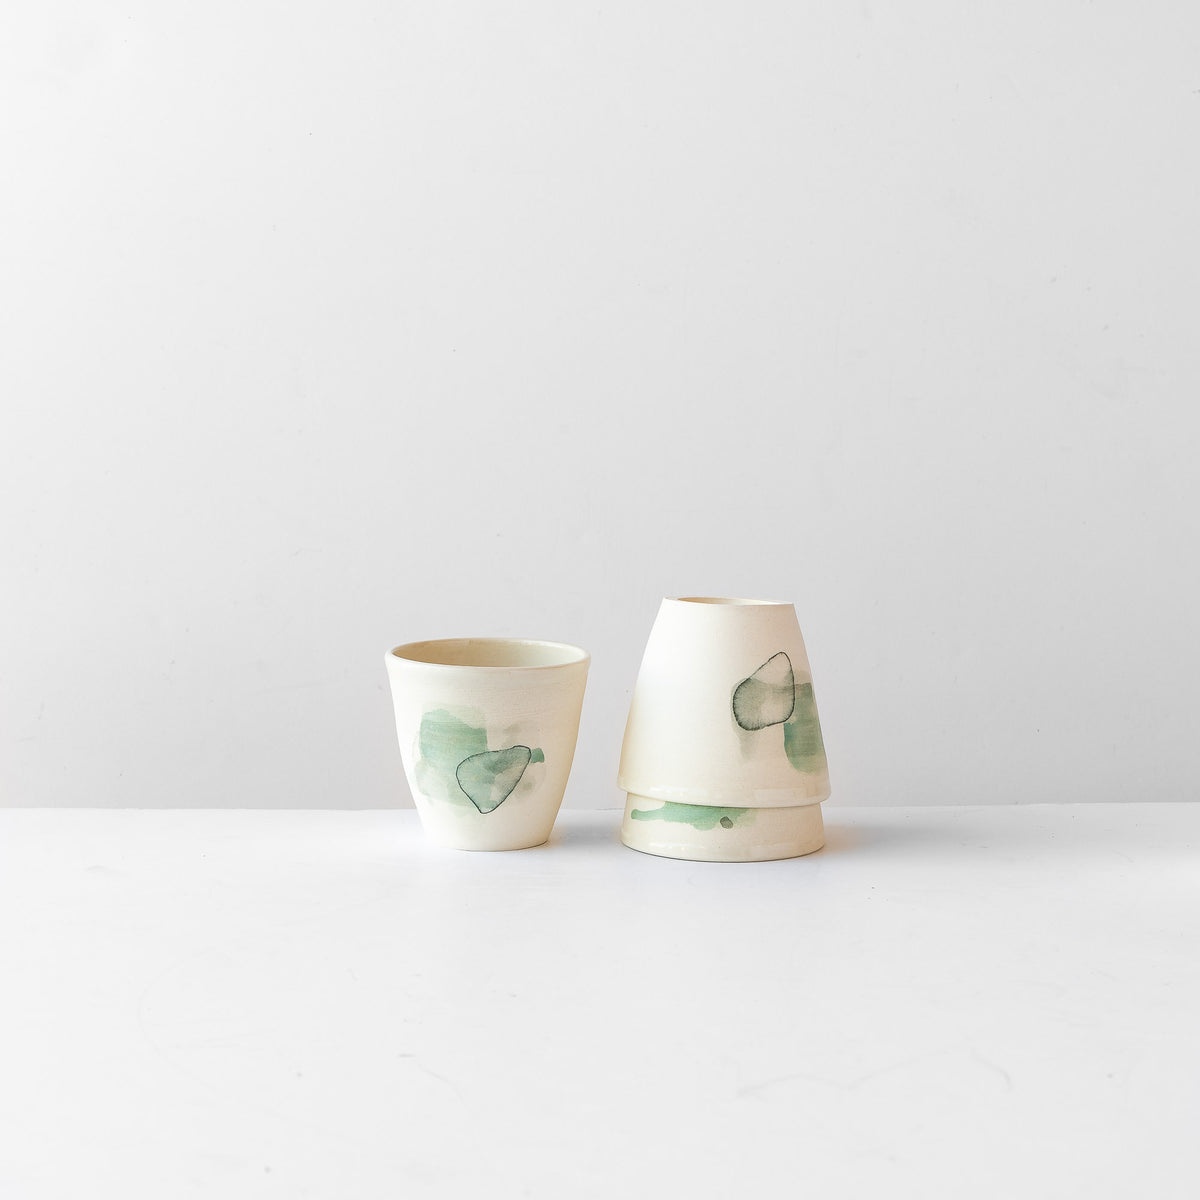 Three Hand Painted Porcelain Tumblers with Green Pattern - Sold by Chic & Basta